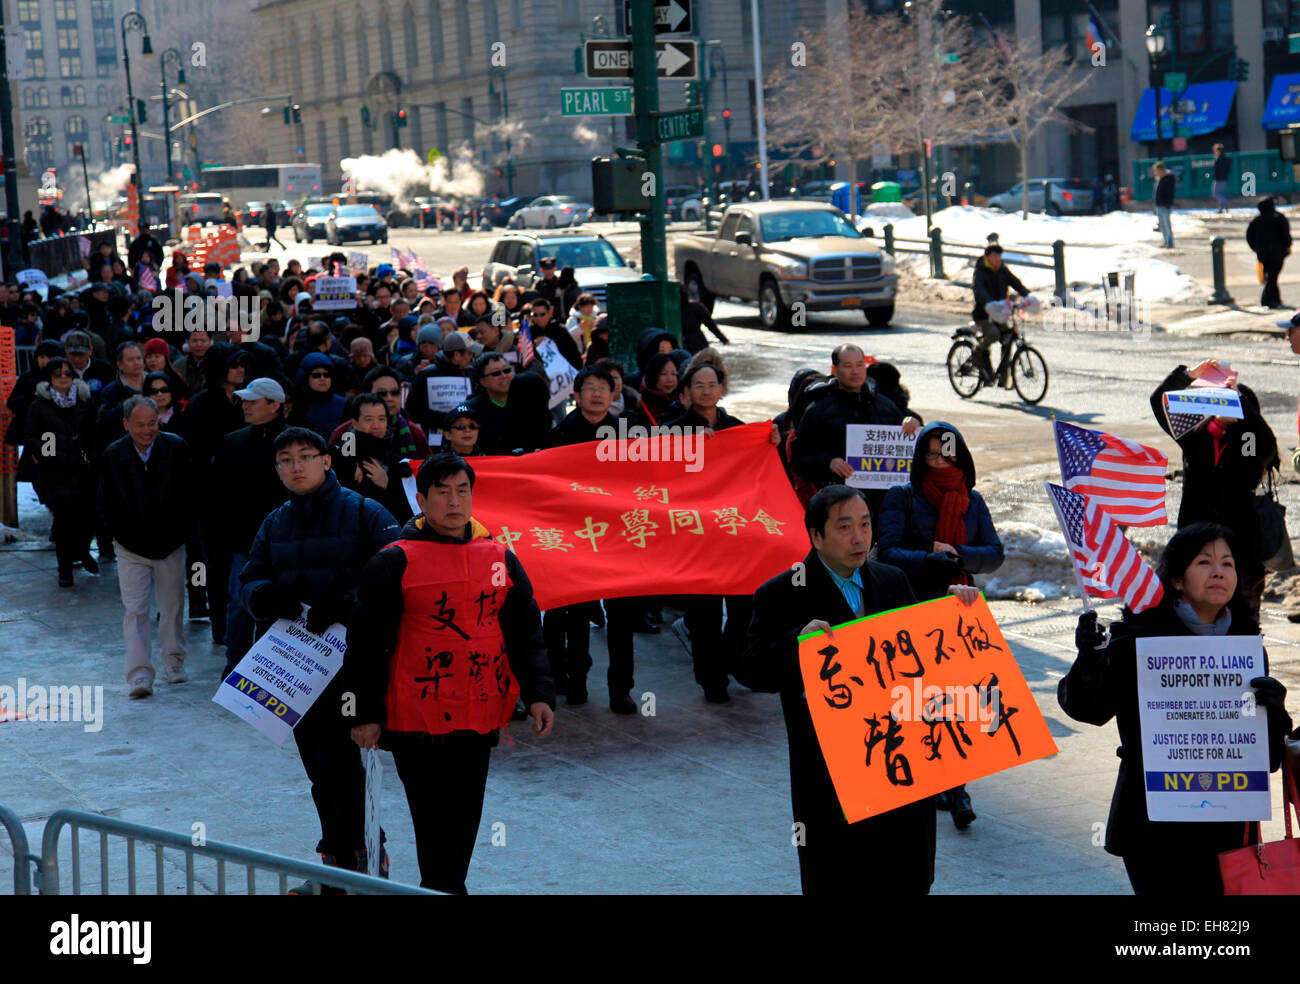 NEW YORK, AMERICA -MARCH 08 : (CHINA MAINLAND OUT)Large groups of ethnic Chinese citizens come to New York City - Stock Image